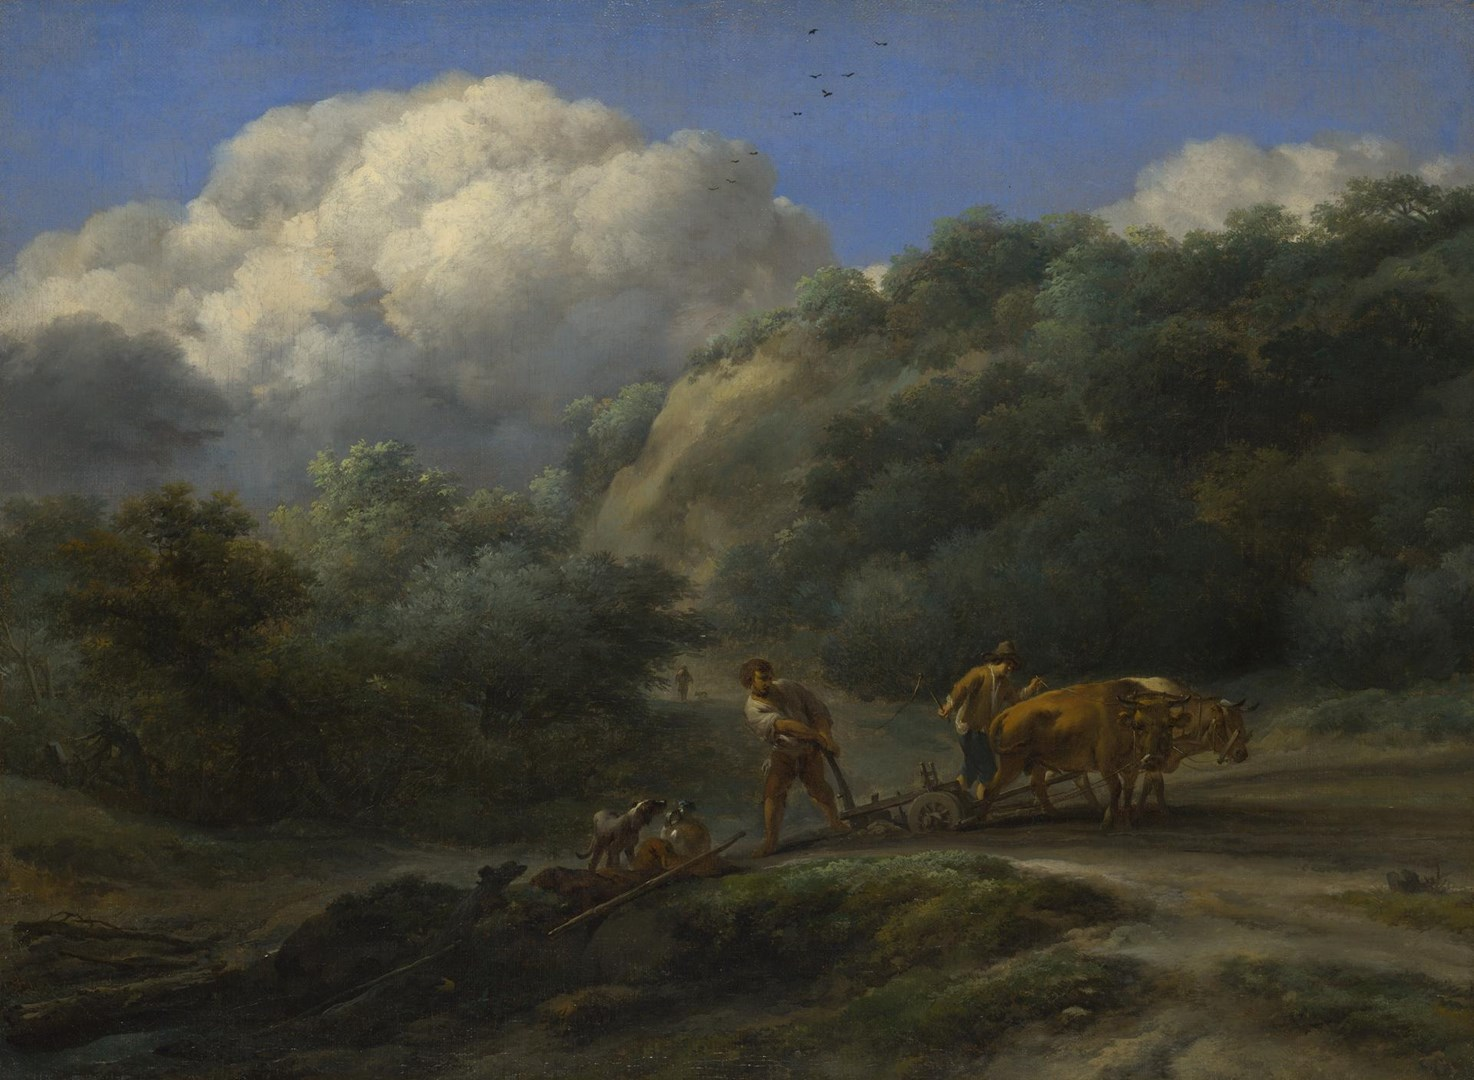 A Man and a Youth ploughing with Oxen by Nicolaes Berchem